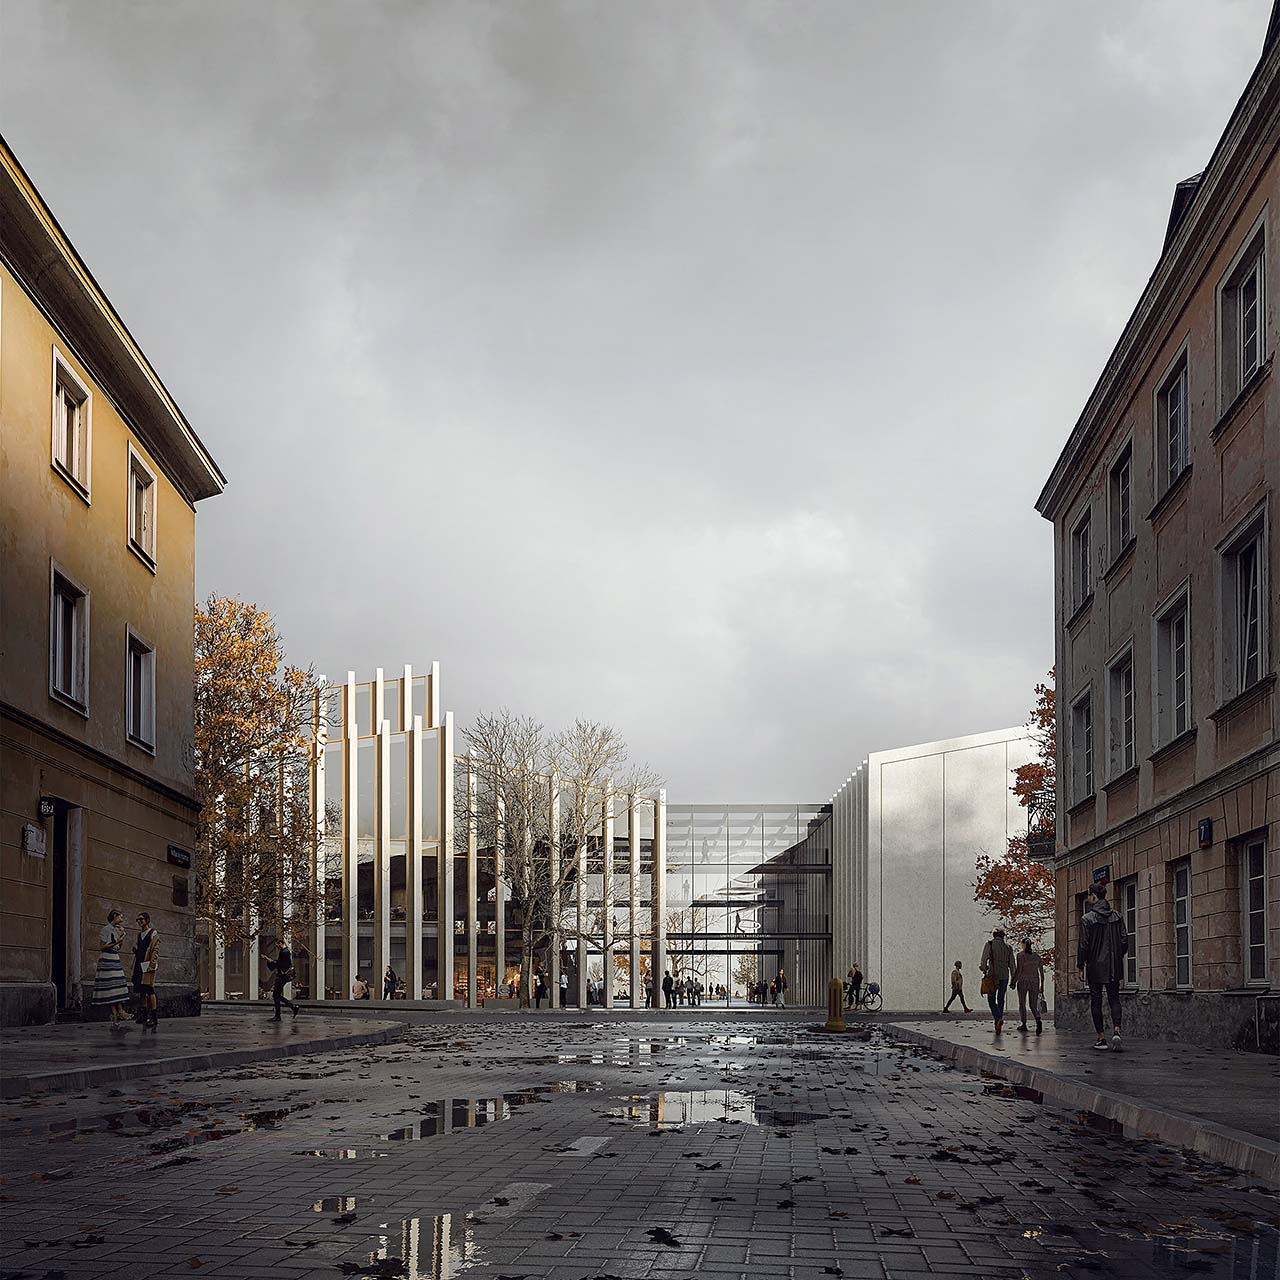 Competition rendering of a university building with glass entrance, reflections on wet street in autumn